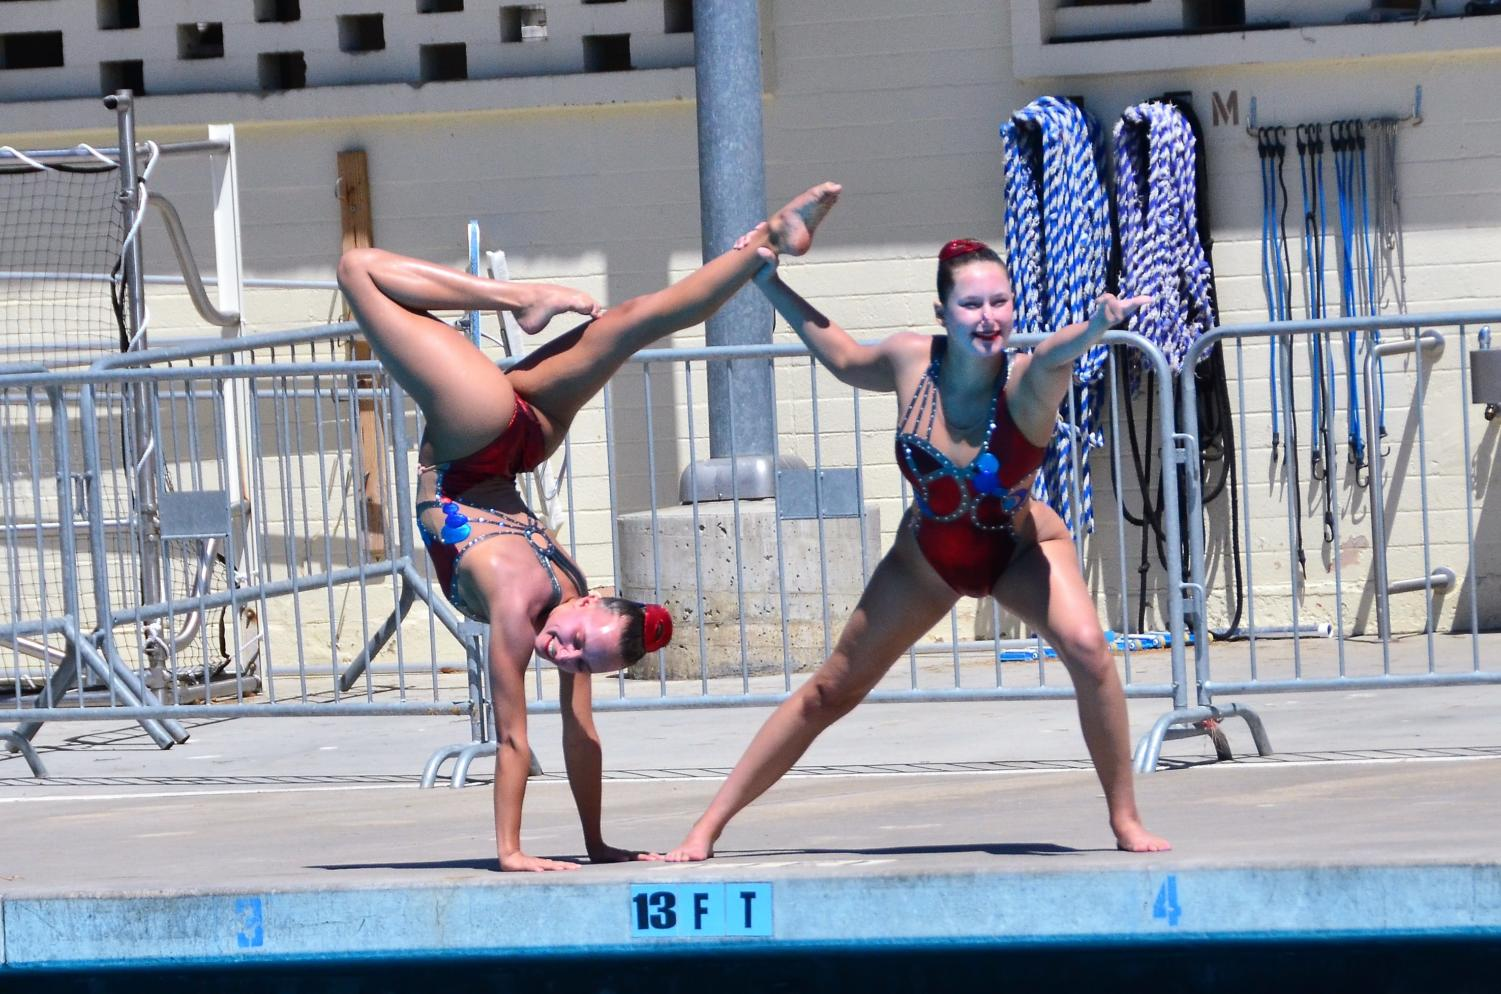 Niki Szekely and partner Emma Thullen perform a doubles routine.